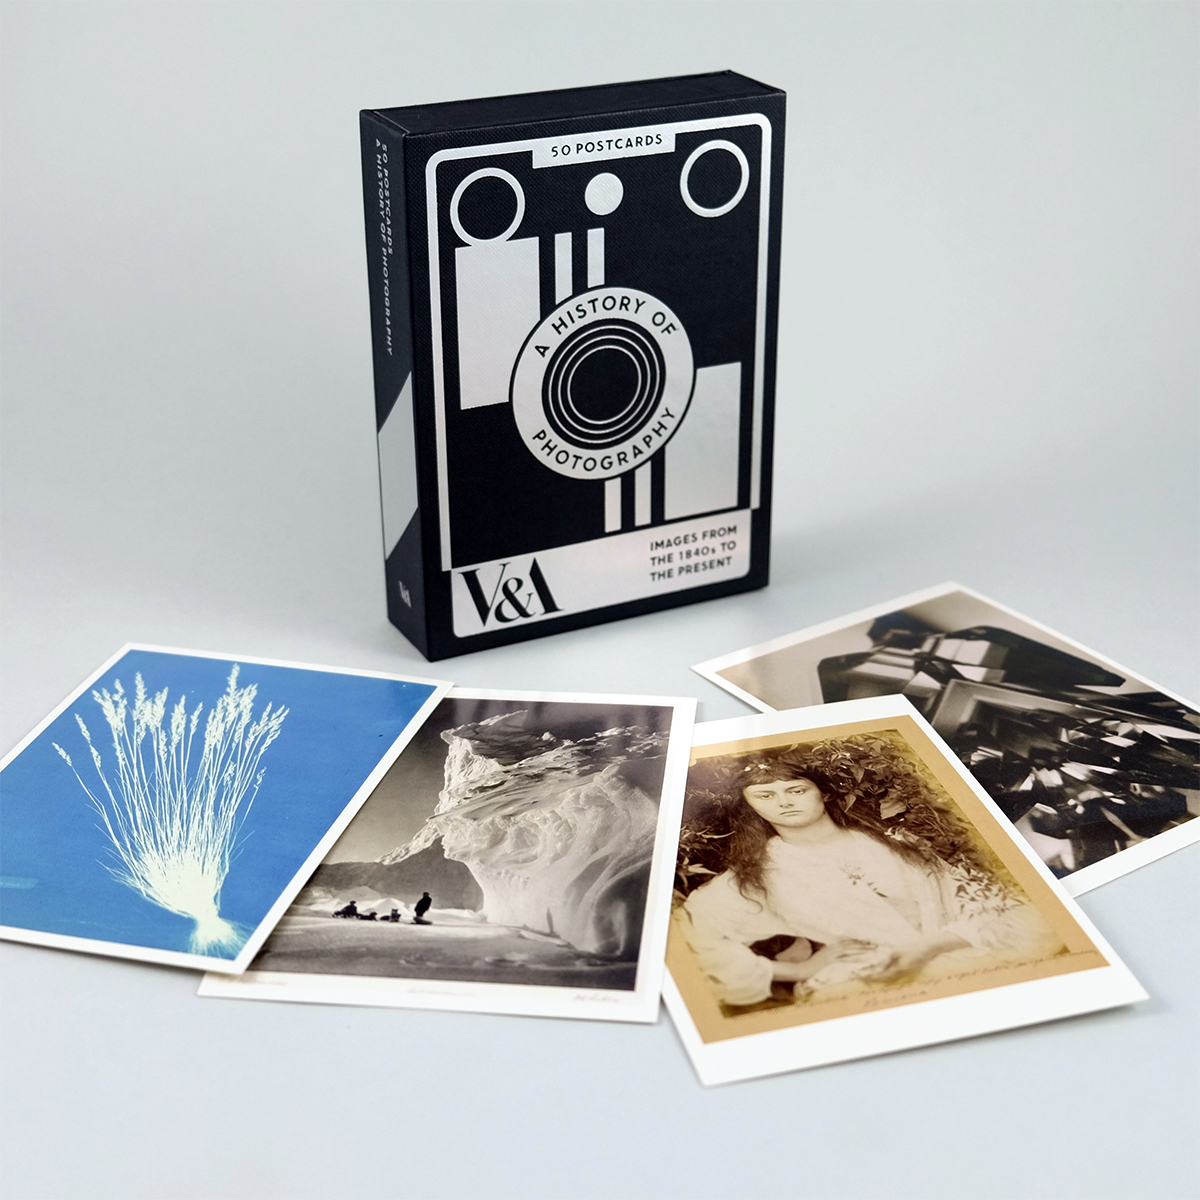 V&A Photography Centre: 50 postcards